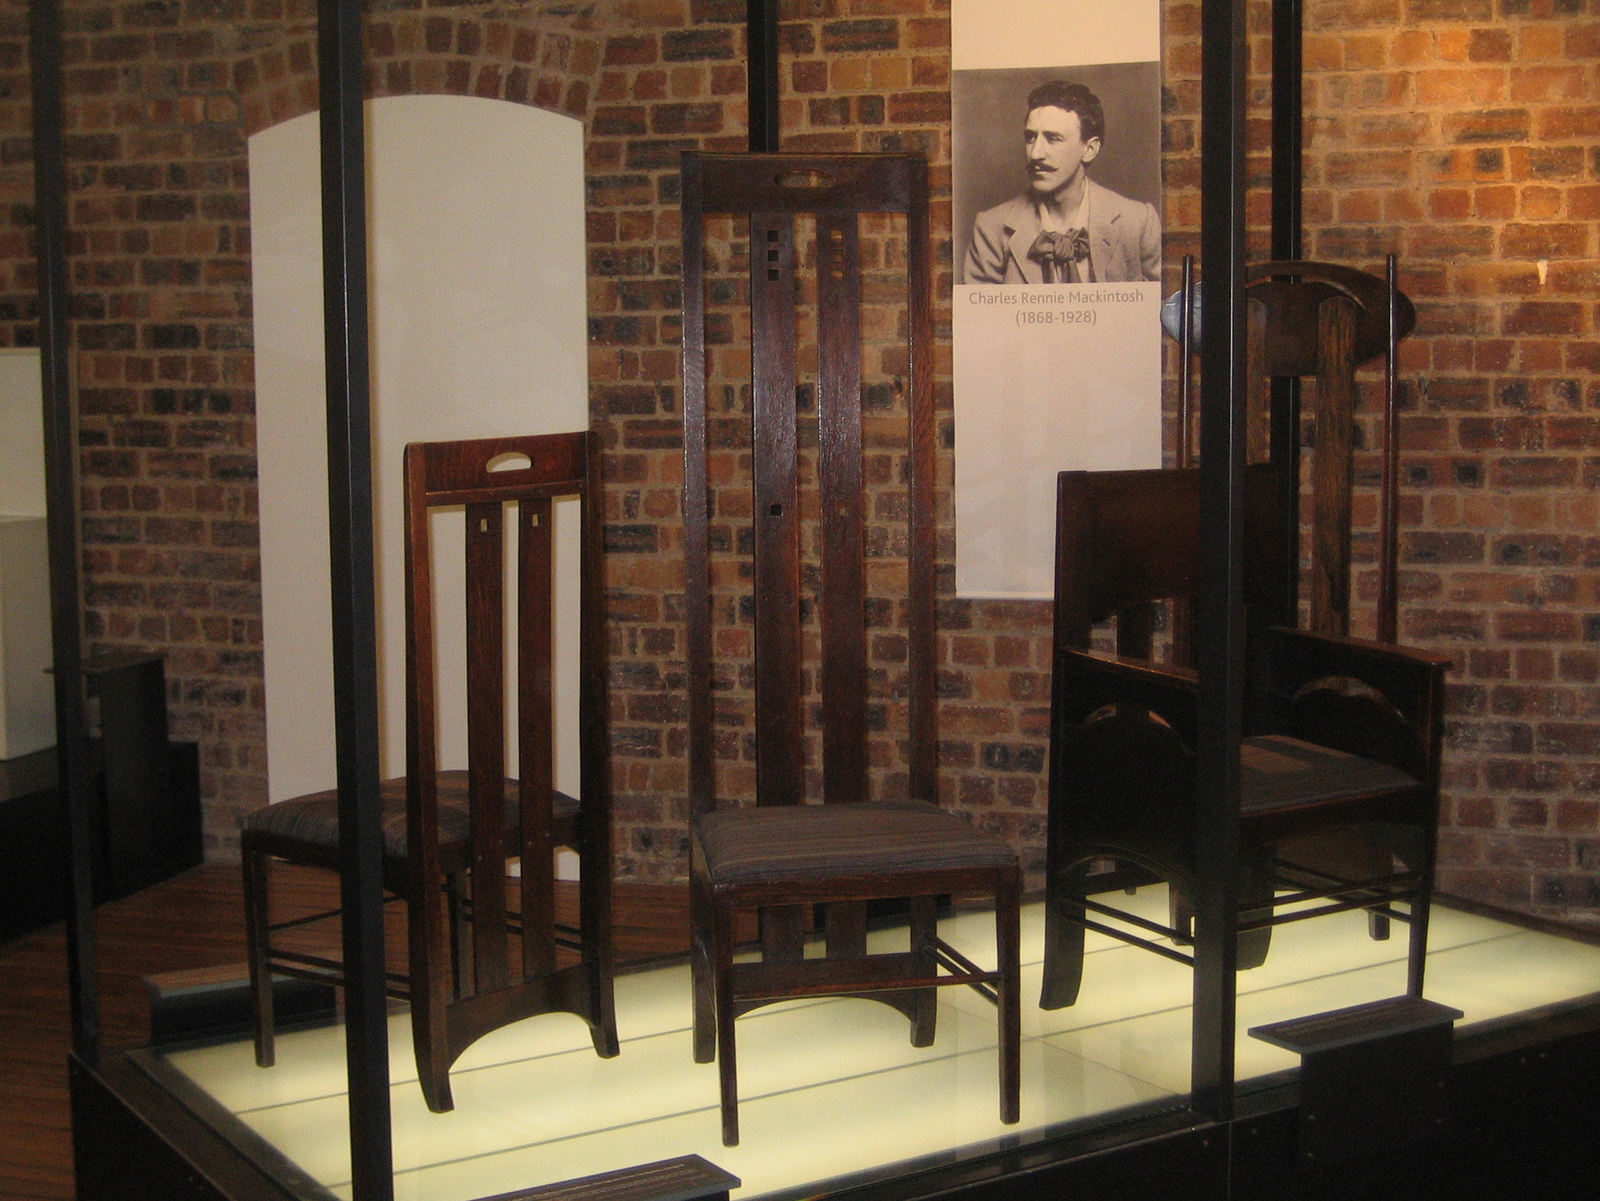 There is a little gallery of Mackintosh's furniture at the GSA. They have the largest collection in the world at over 200 pieces, but only a fraction of that are on display.